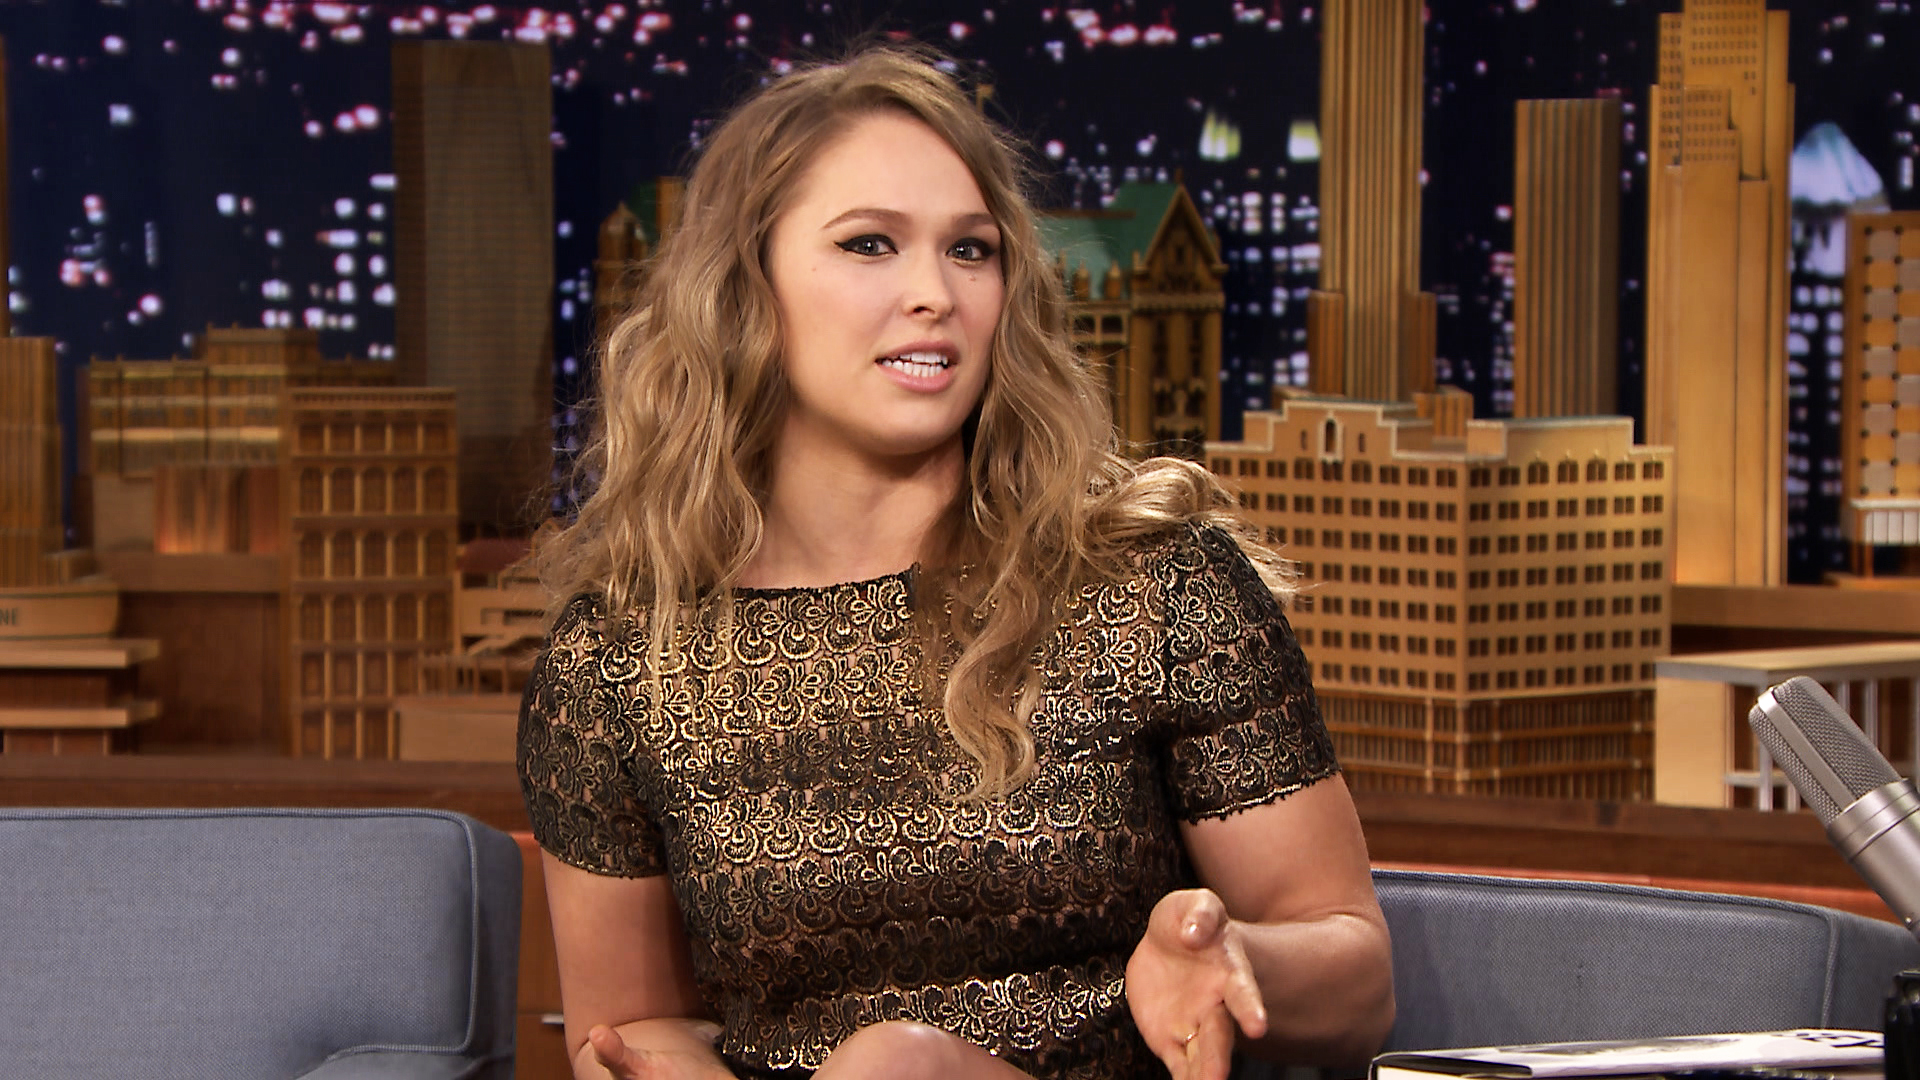 Ronda rousey 12 hd wallpaper 1024x576 ronda rousey wallpapers